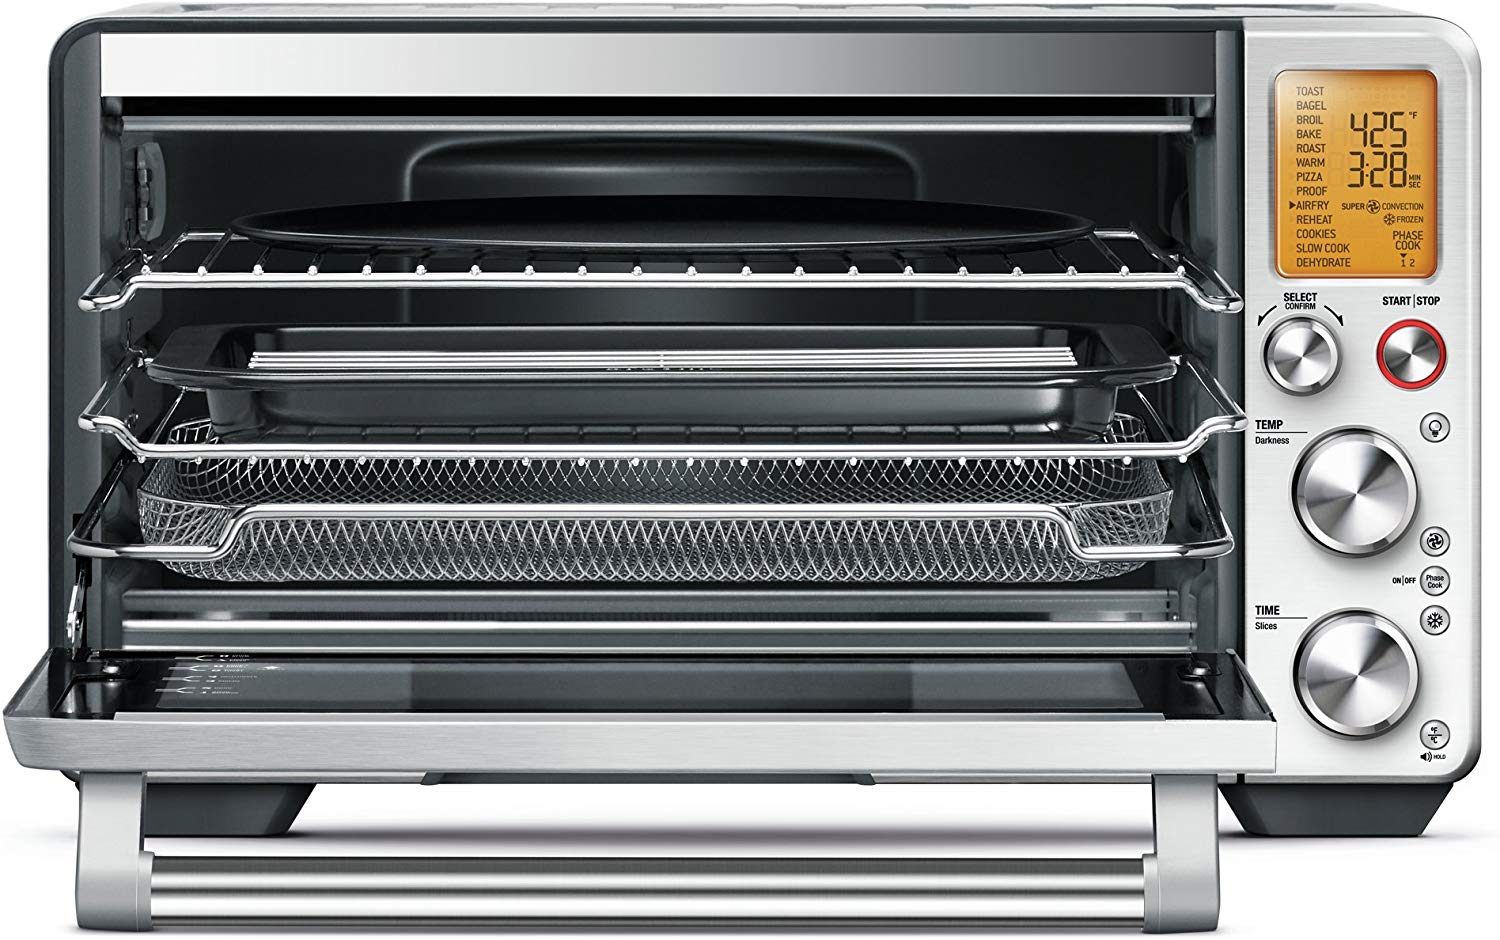 Breville Bov900bss Convection Air Fry Smart Oven Stainless